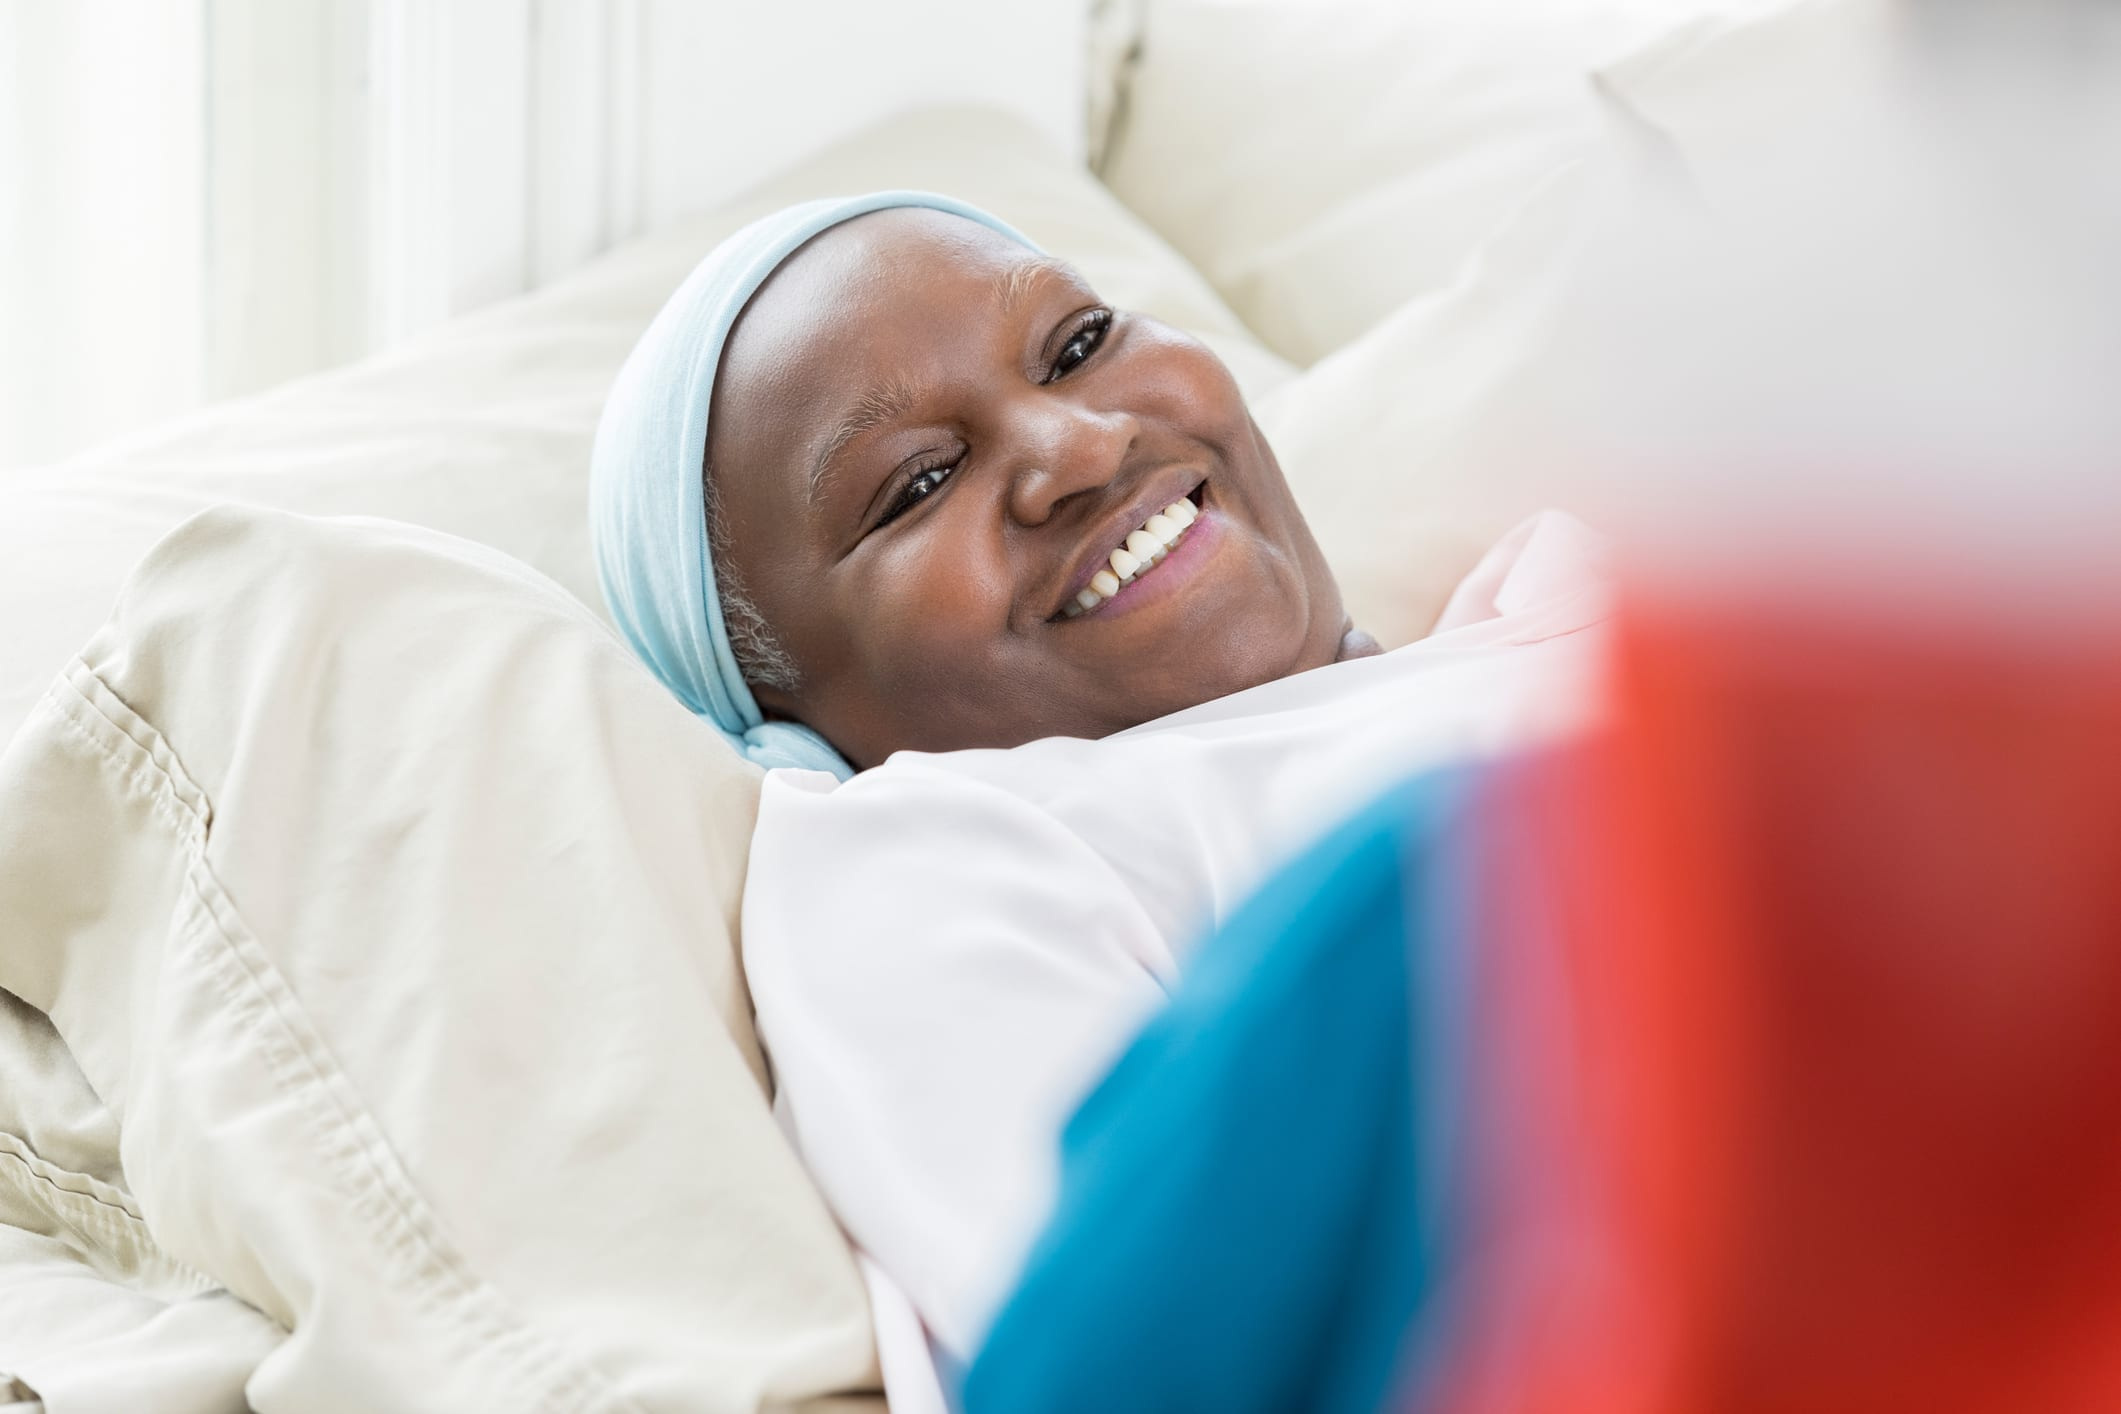 Cancer Patient Smiling